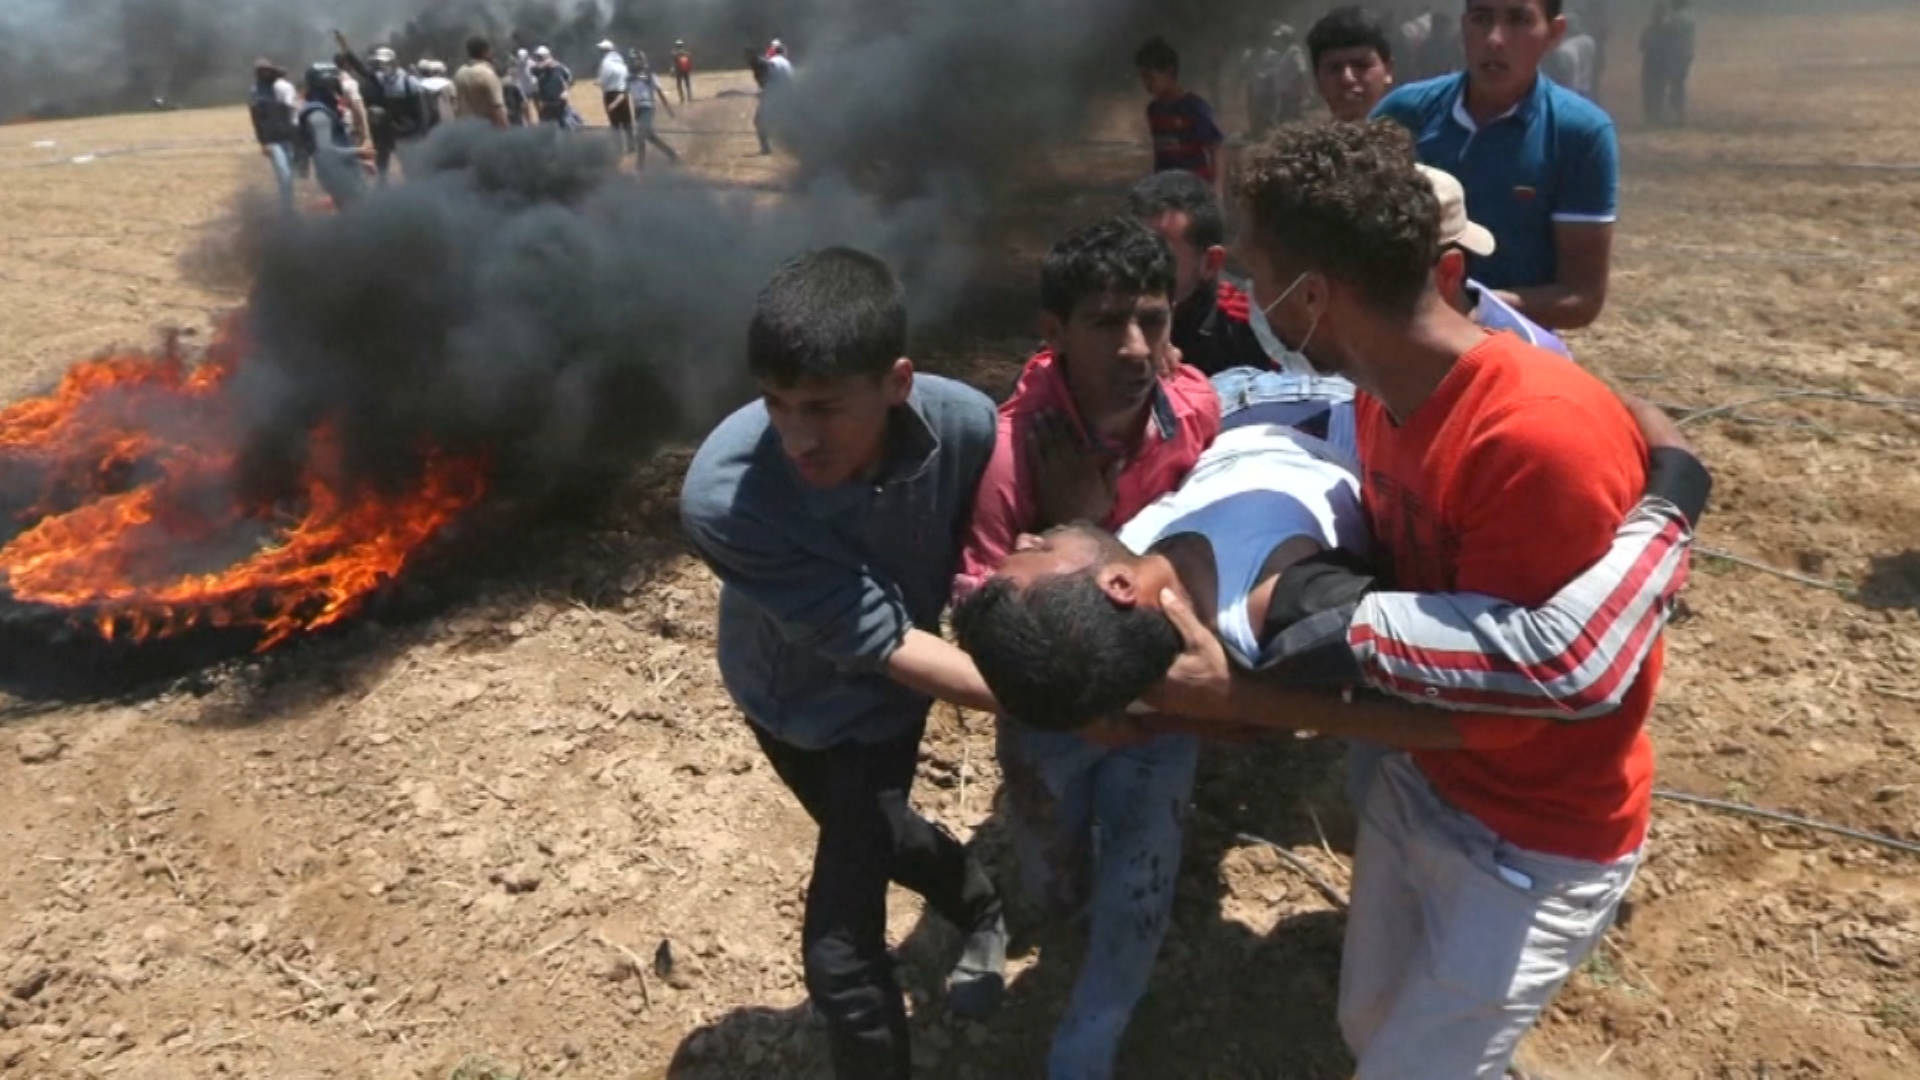 H1 61 palestinians killed by israeli army